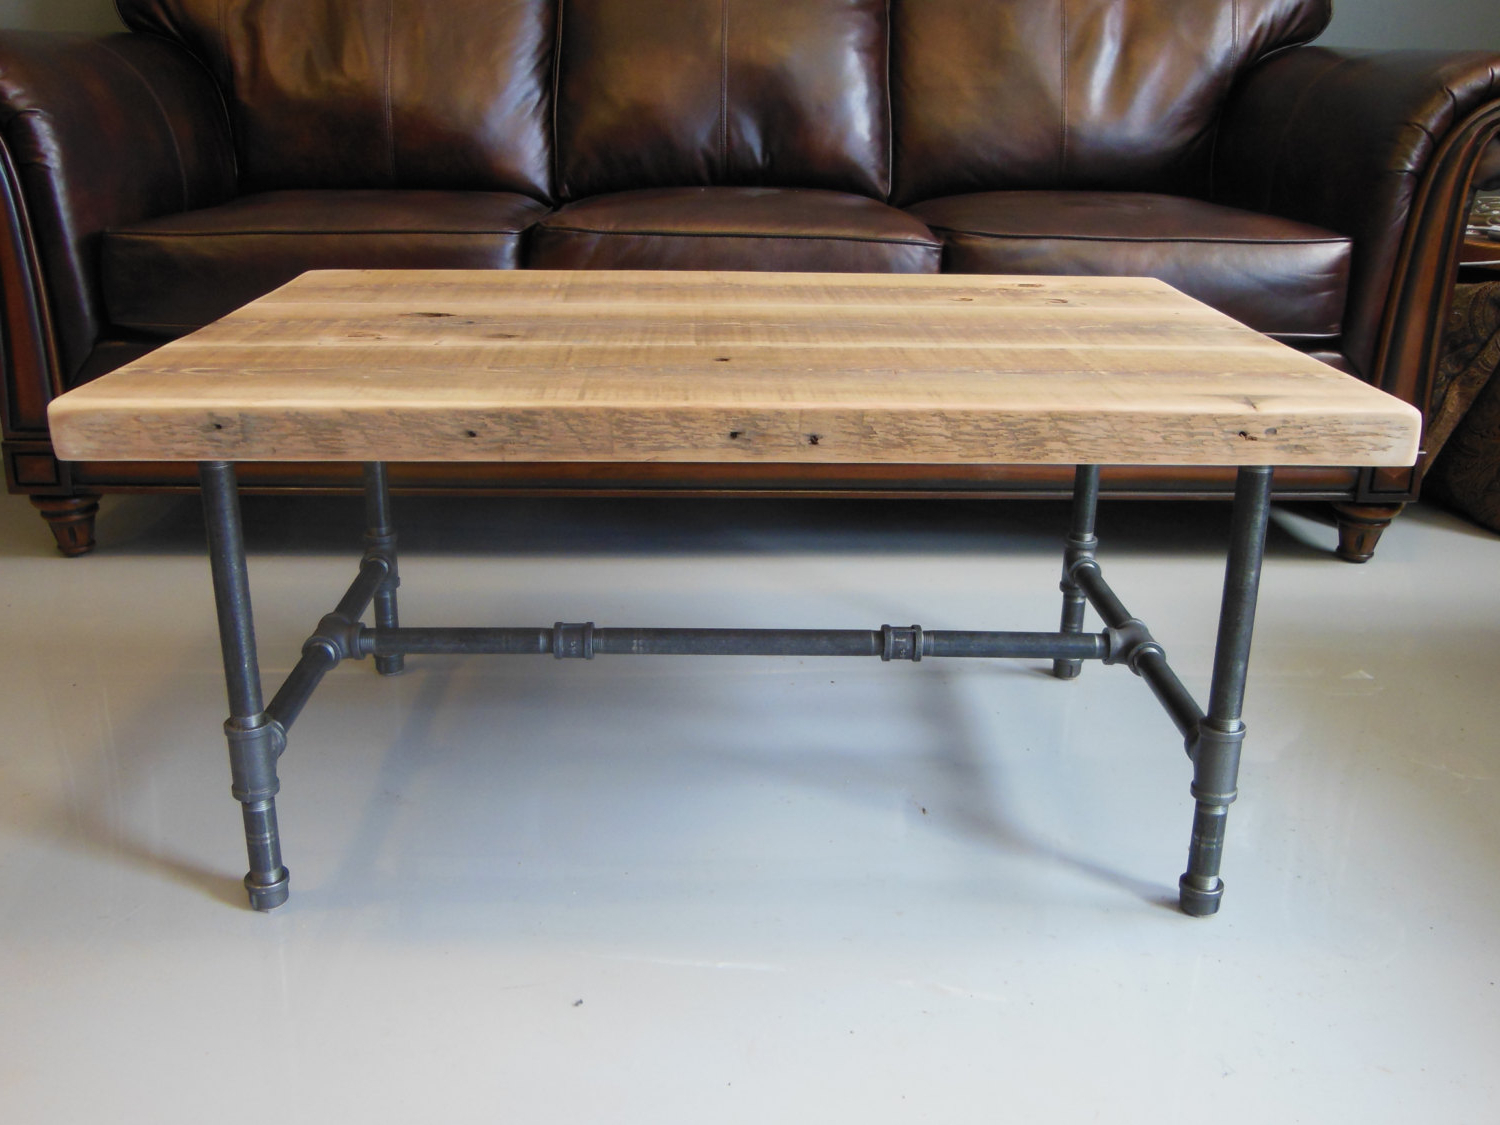 Latest Iron Wood Coffee Tables With Wheels Regarding Wood Coffee Table Legs Industrial – Thelightlaughed (Gallery 2 of 20)